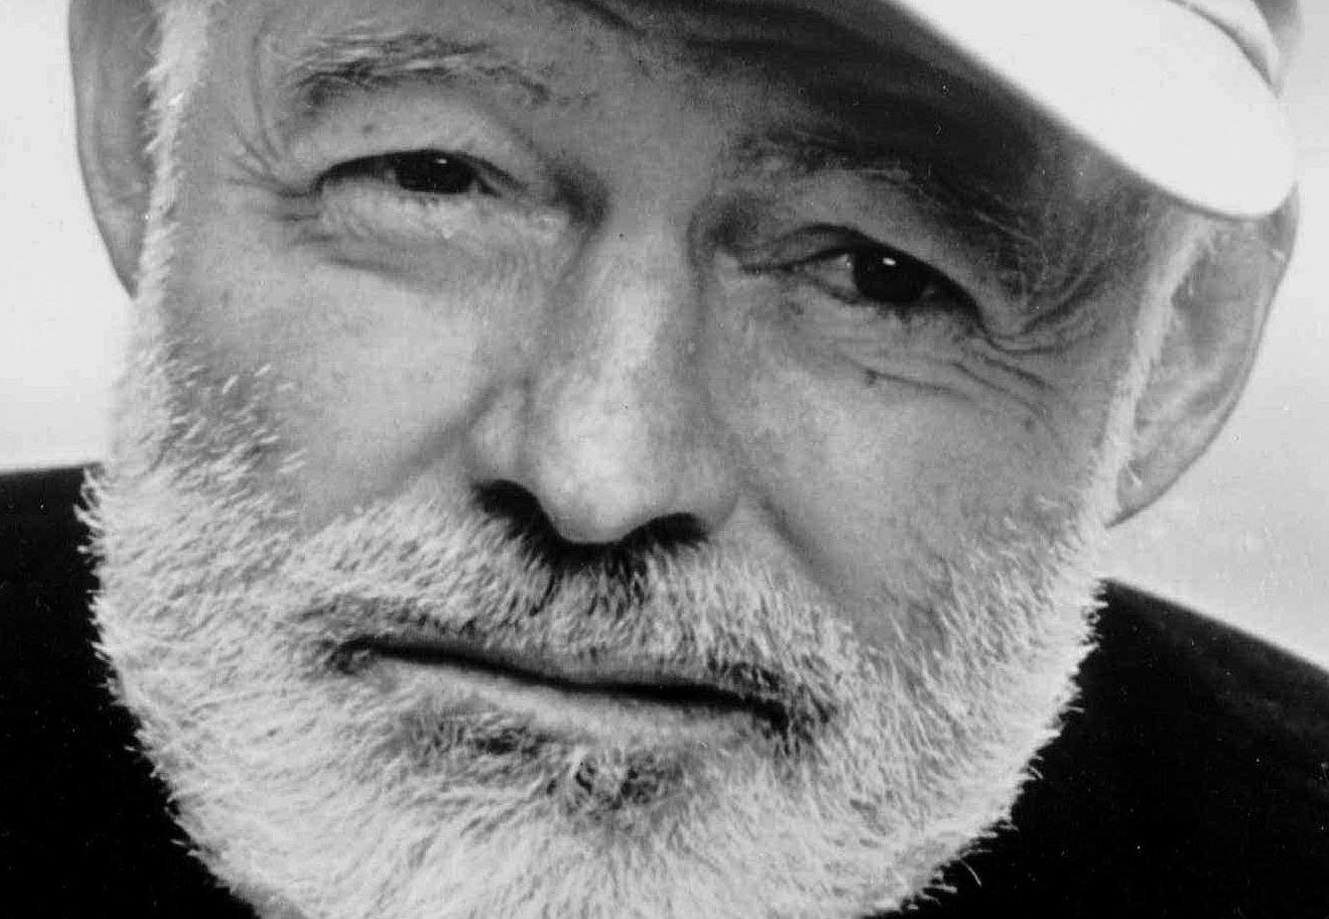 The Old Man, The Old Man And The Sea, Ernest Hemingway, The greatest American novelist, American novelist